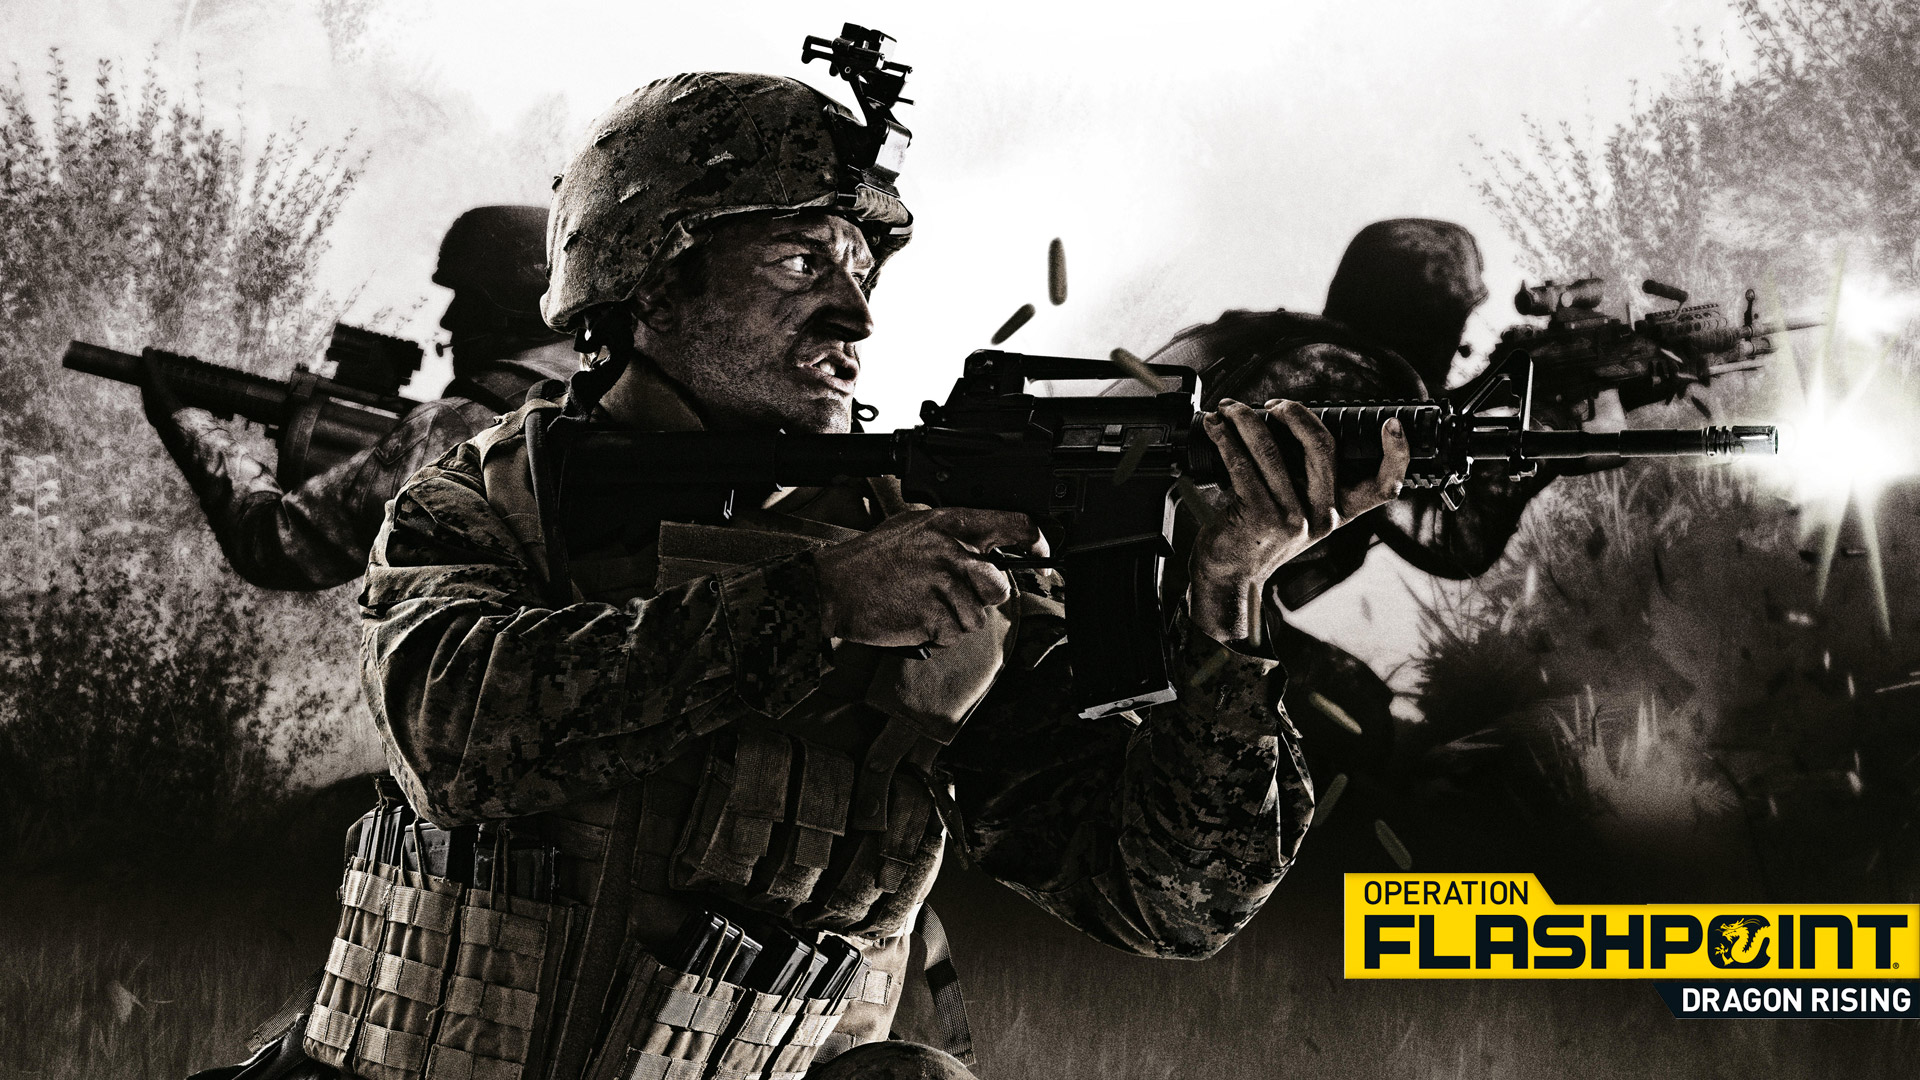 Operation Flashpoint: Dragon Rising Wallpaper in 1920x1080